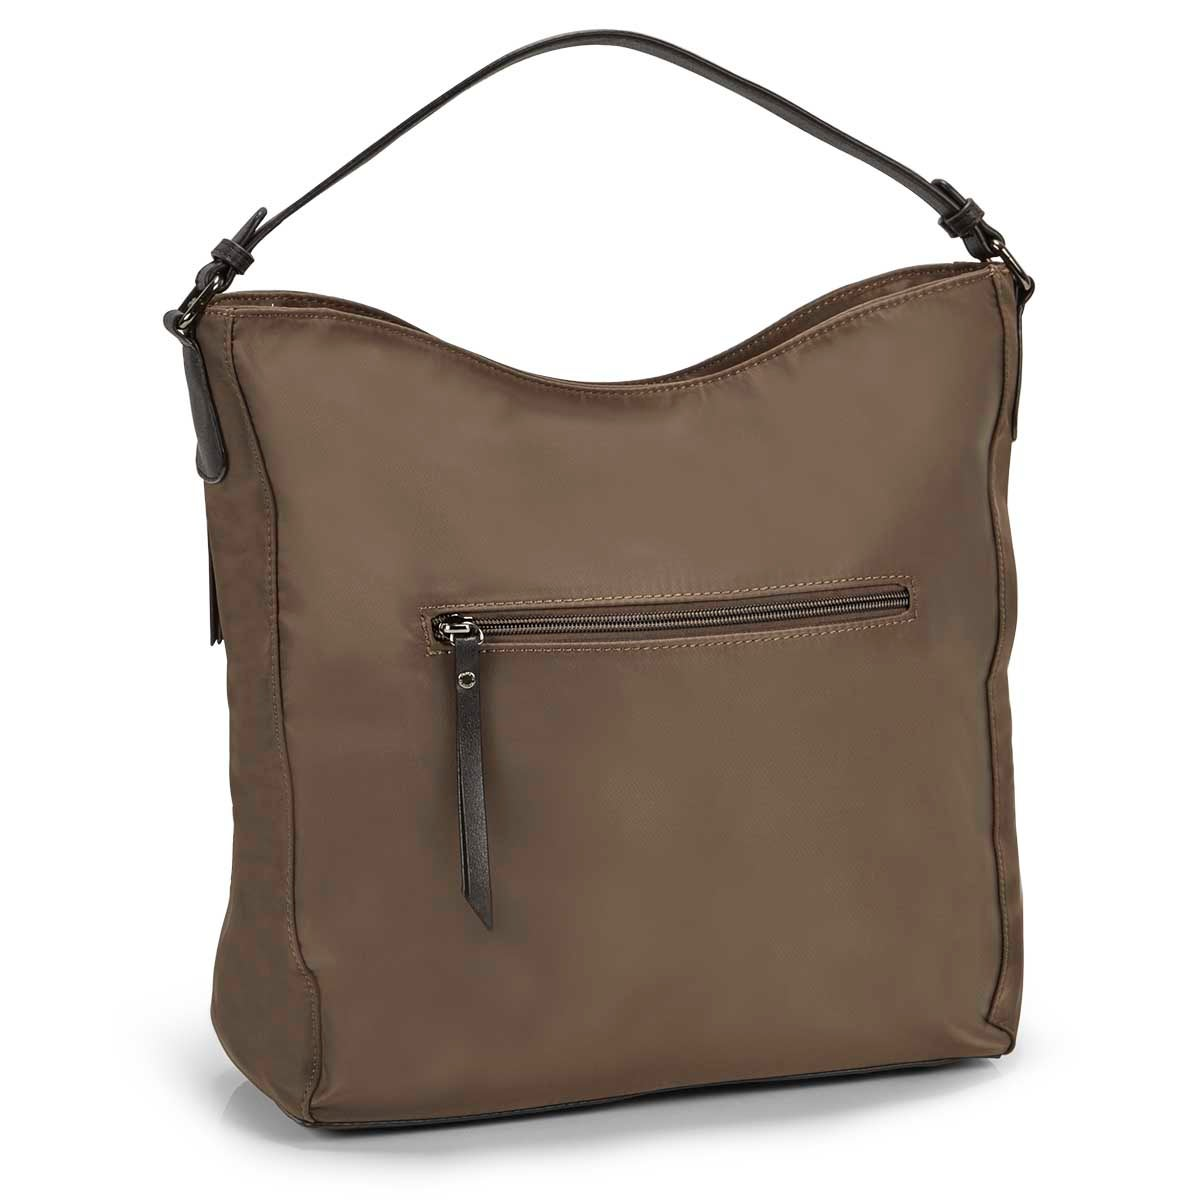 Lds Roots73mca vertical pockets hobo bag